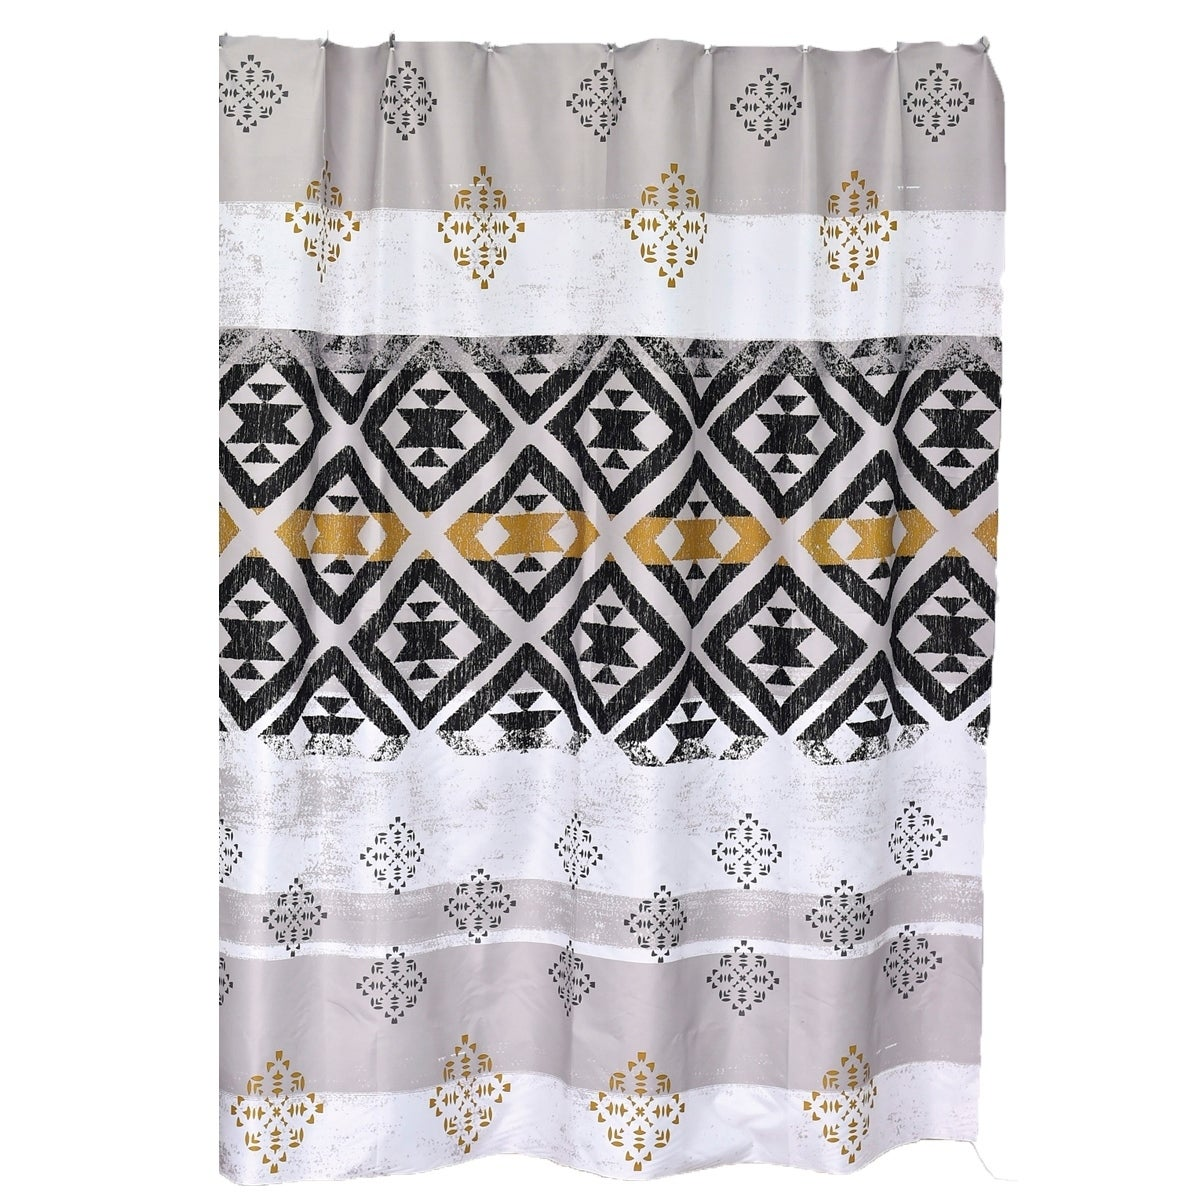 Kenya Printed Polyester Fabric Shower Curtain 71 W X 79 H